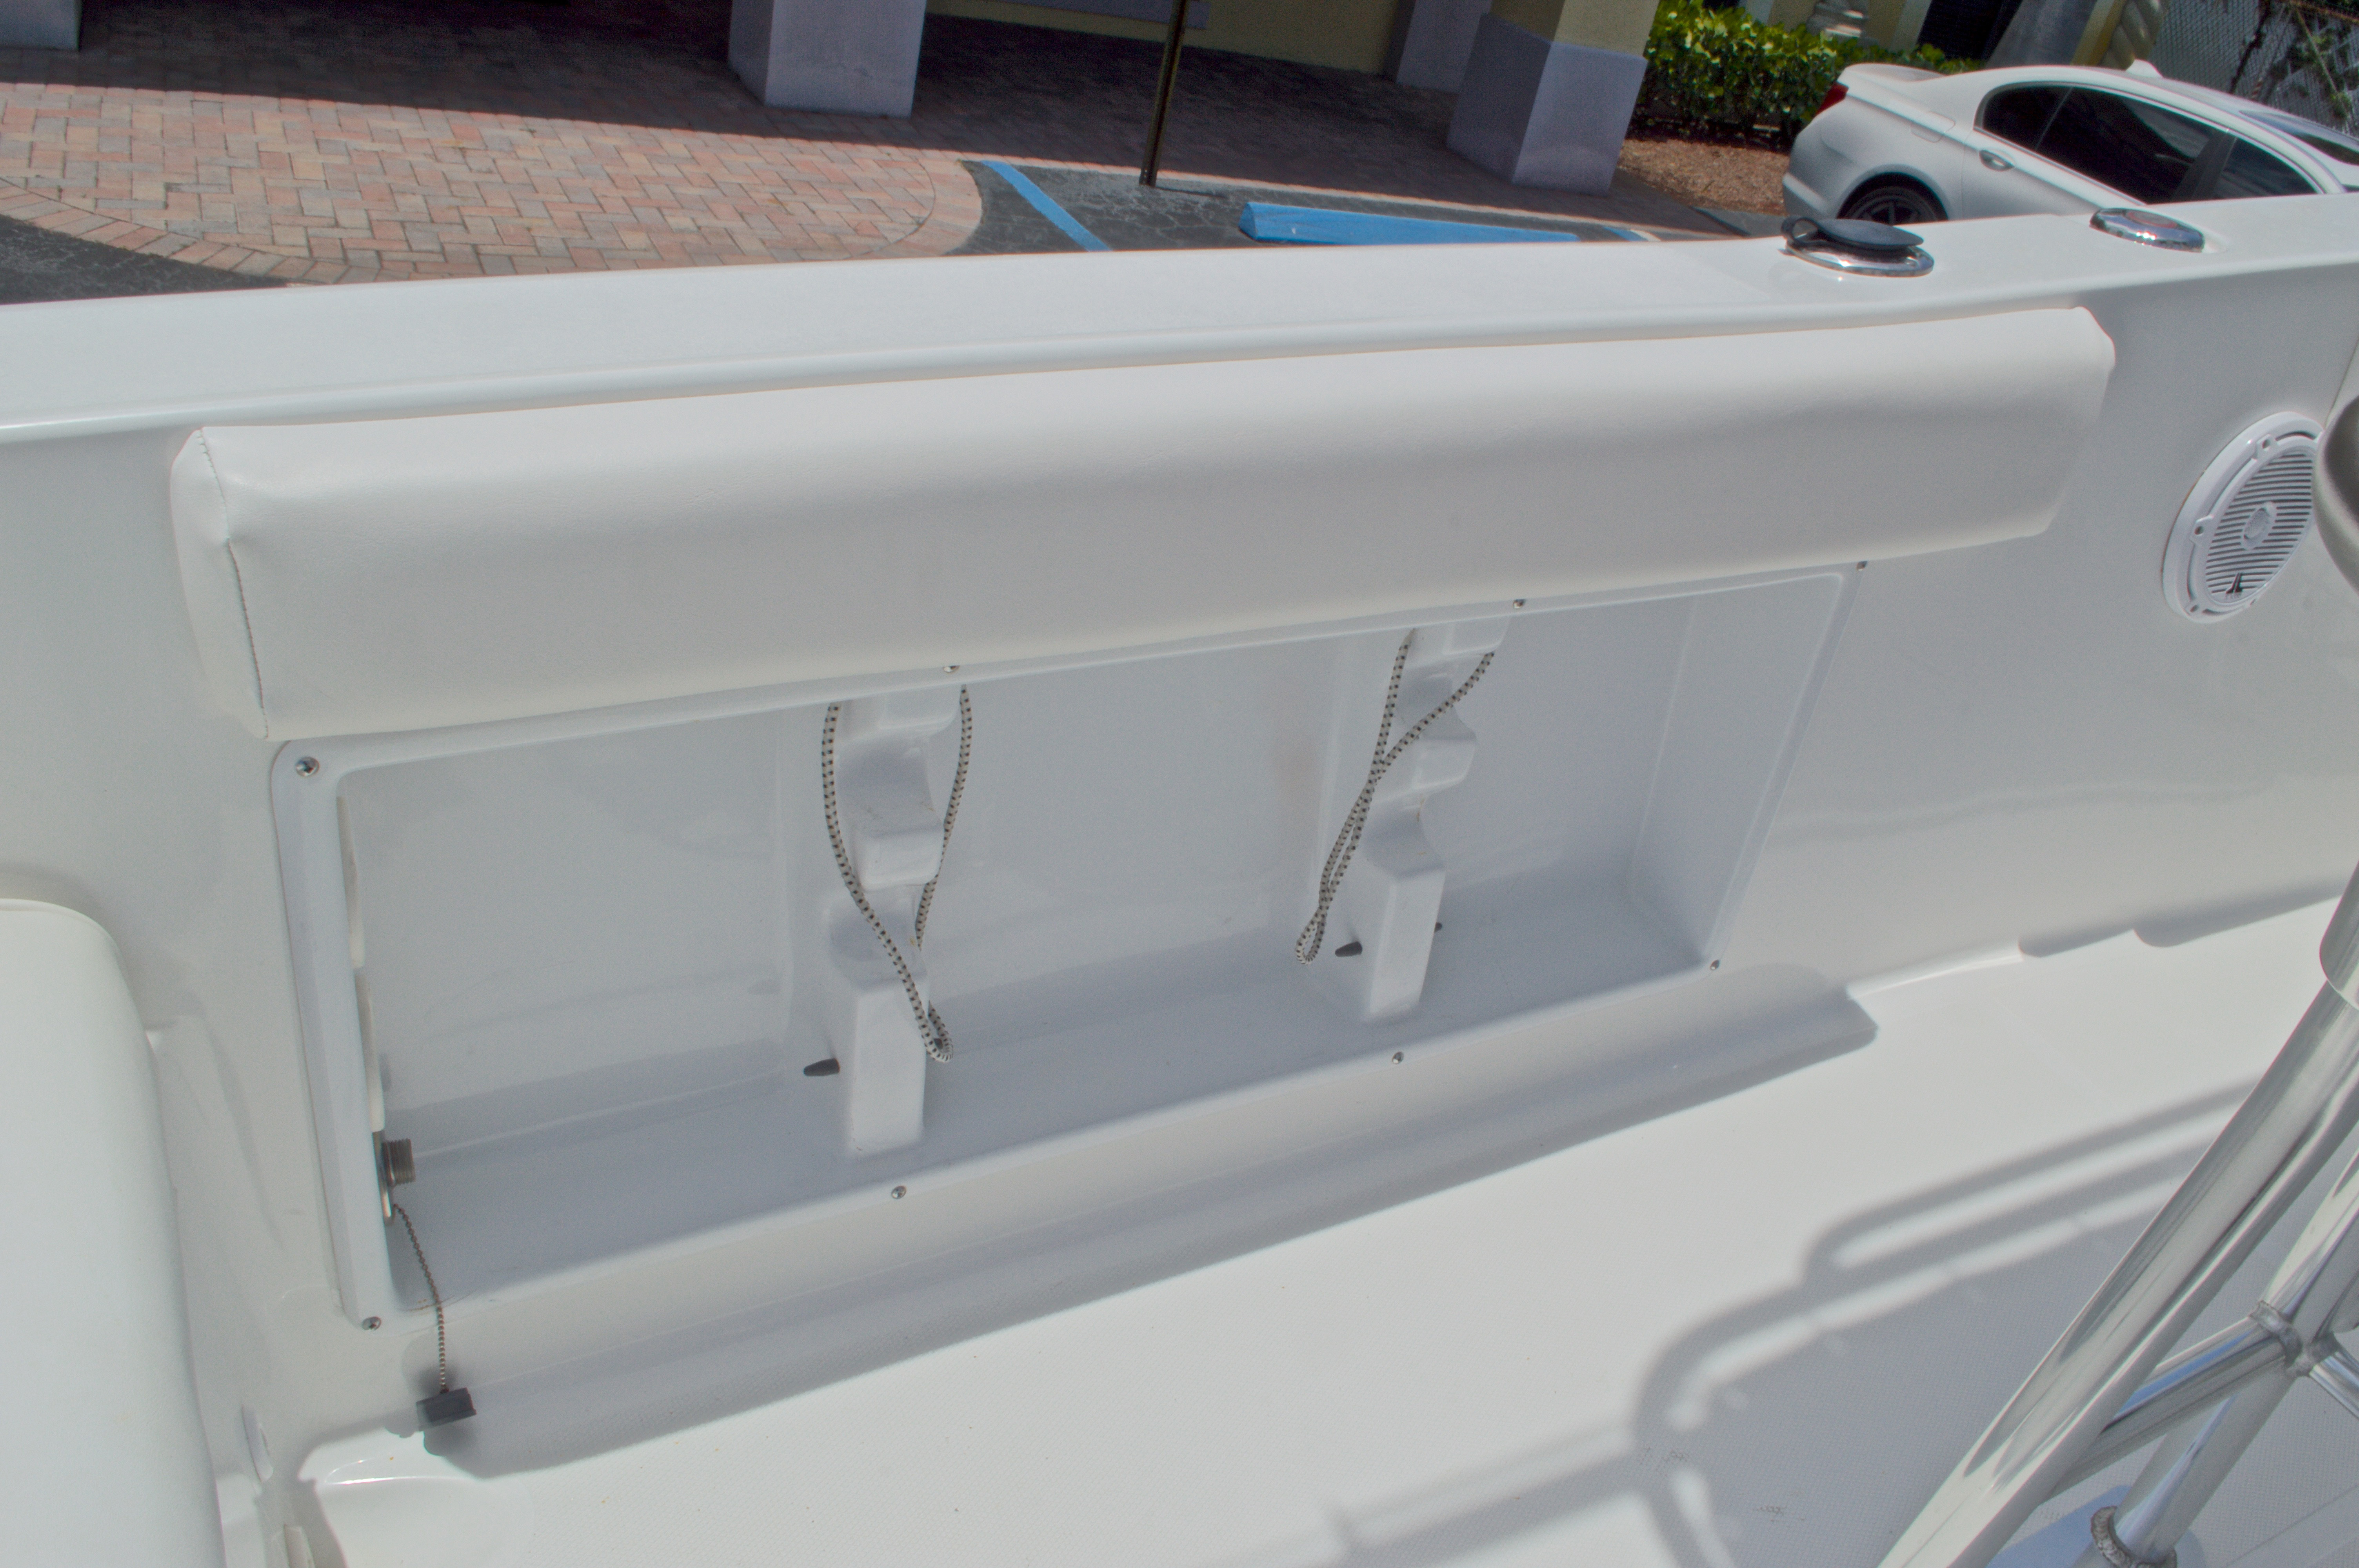 Thumbnail 23 for Used 2013 Sea Hunt 210 Triton boat for sale in West Palm Beach, FL